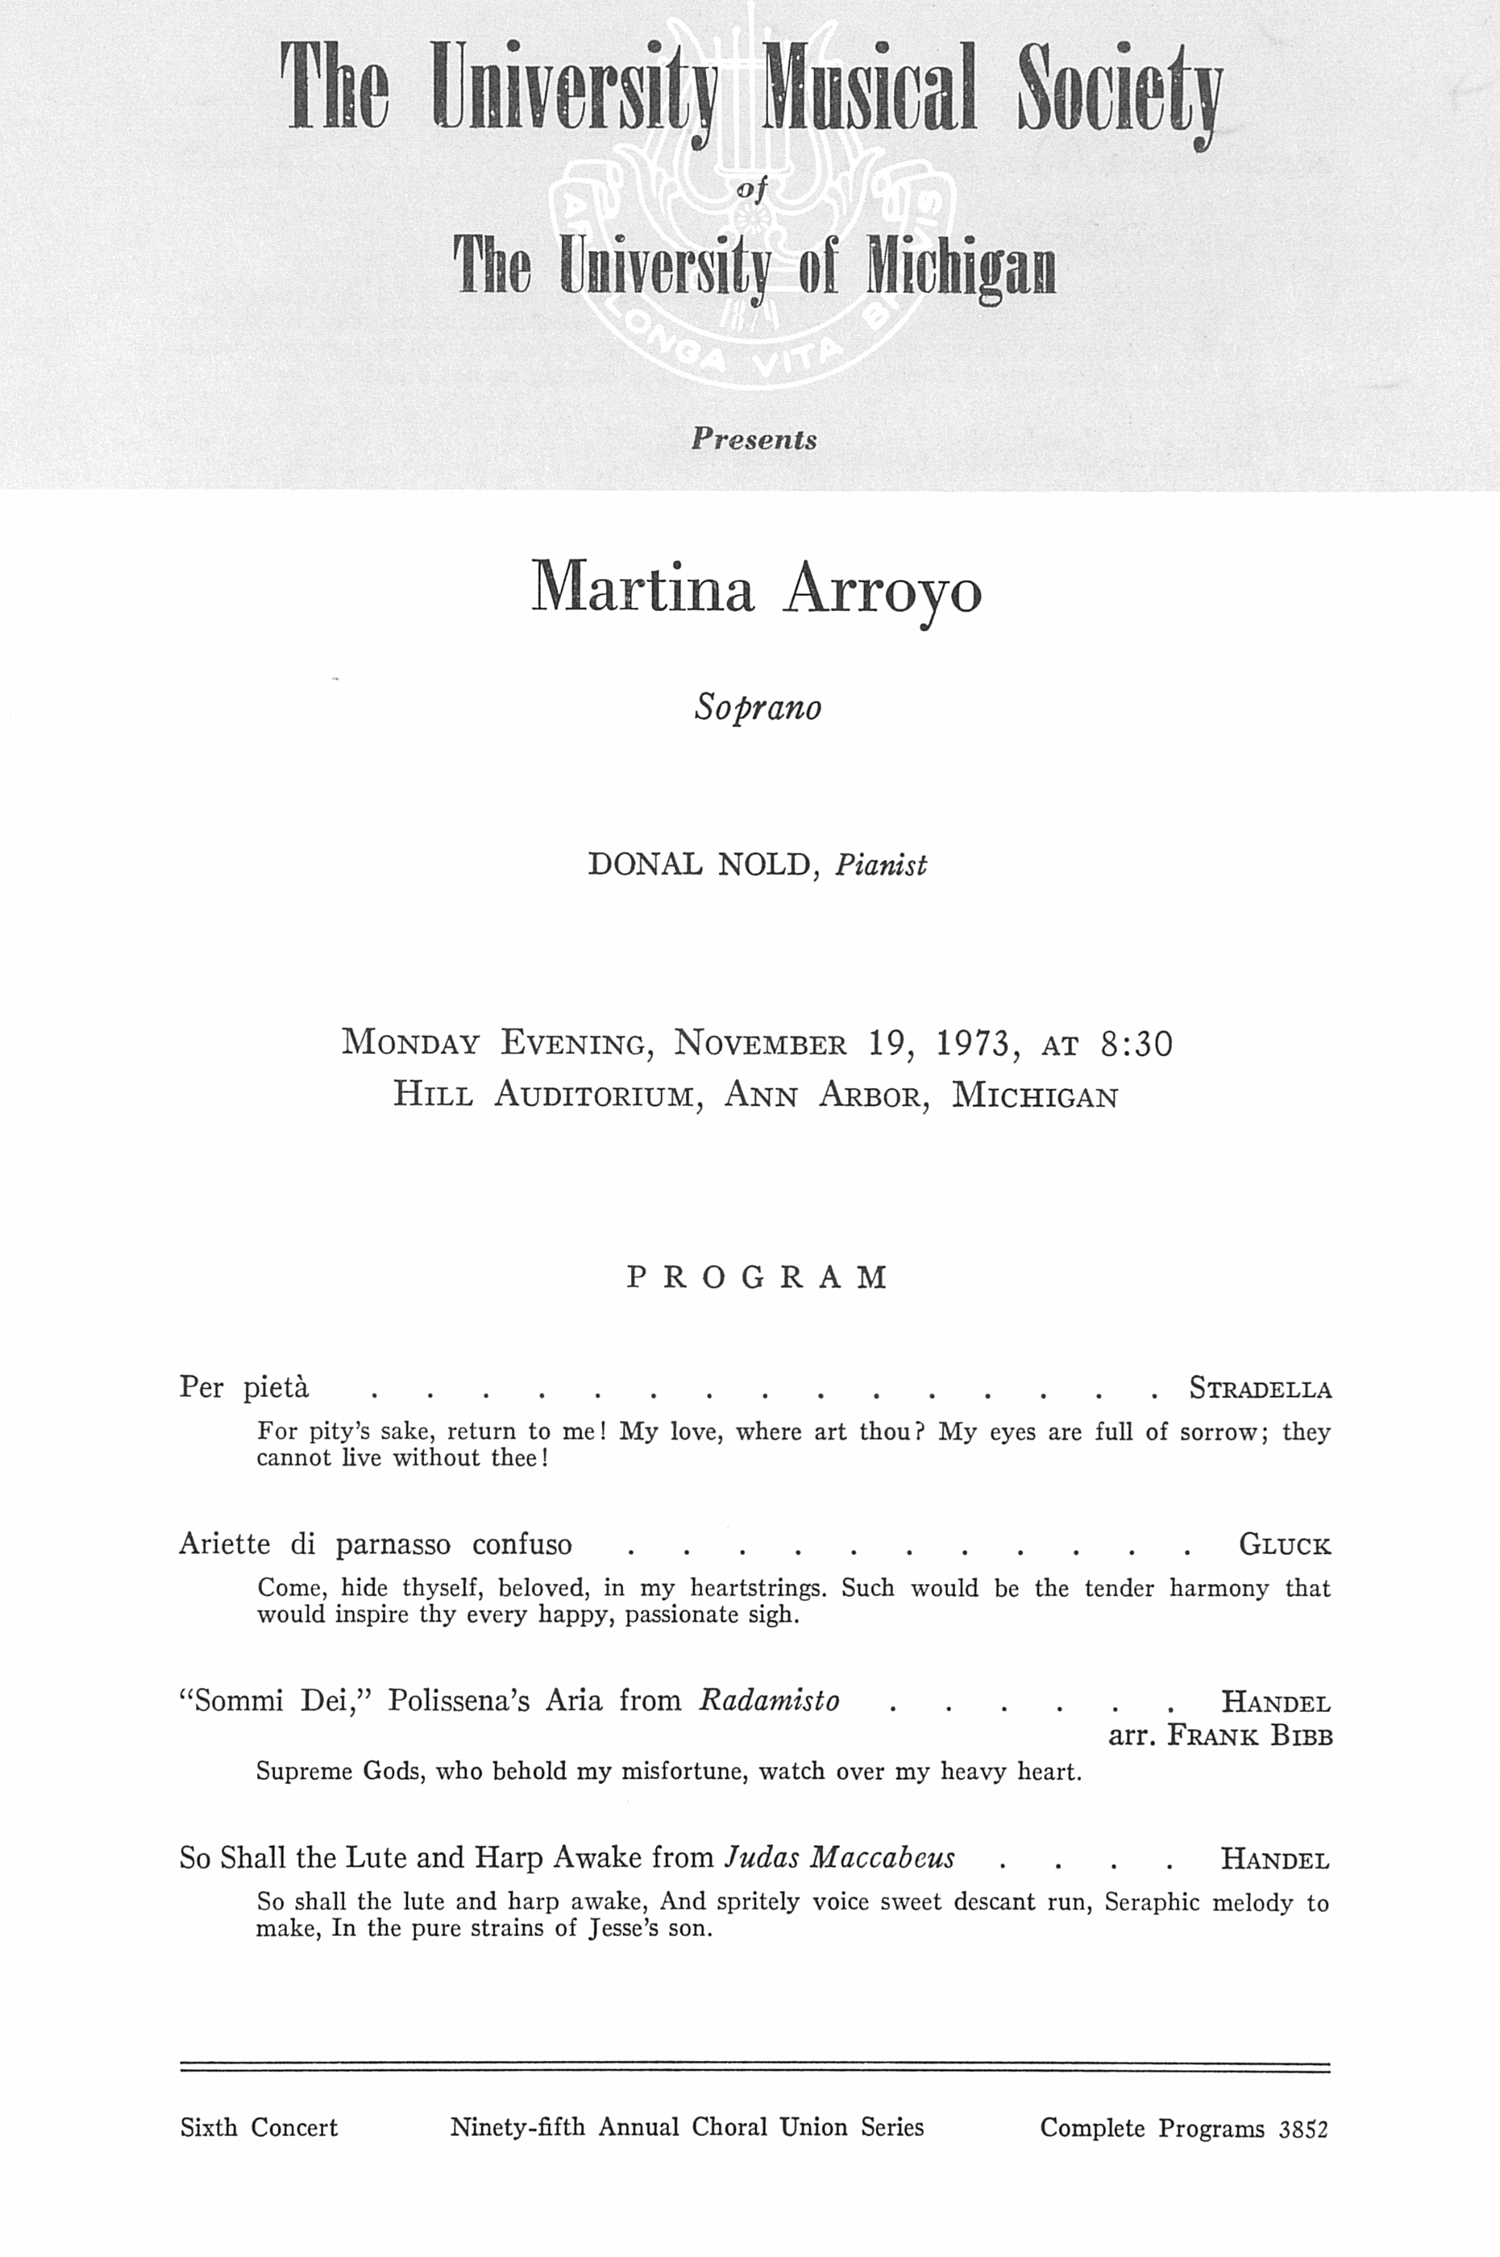 UMS Concert Program, November 19, 1973: Martina Arroyo --  image